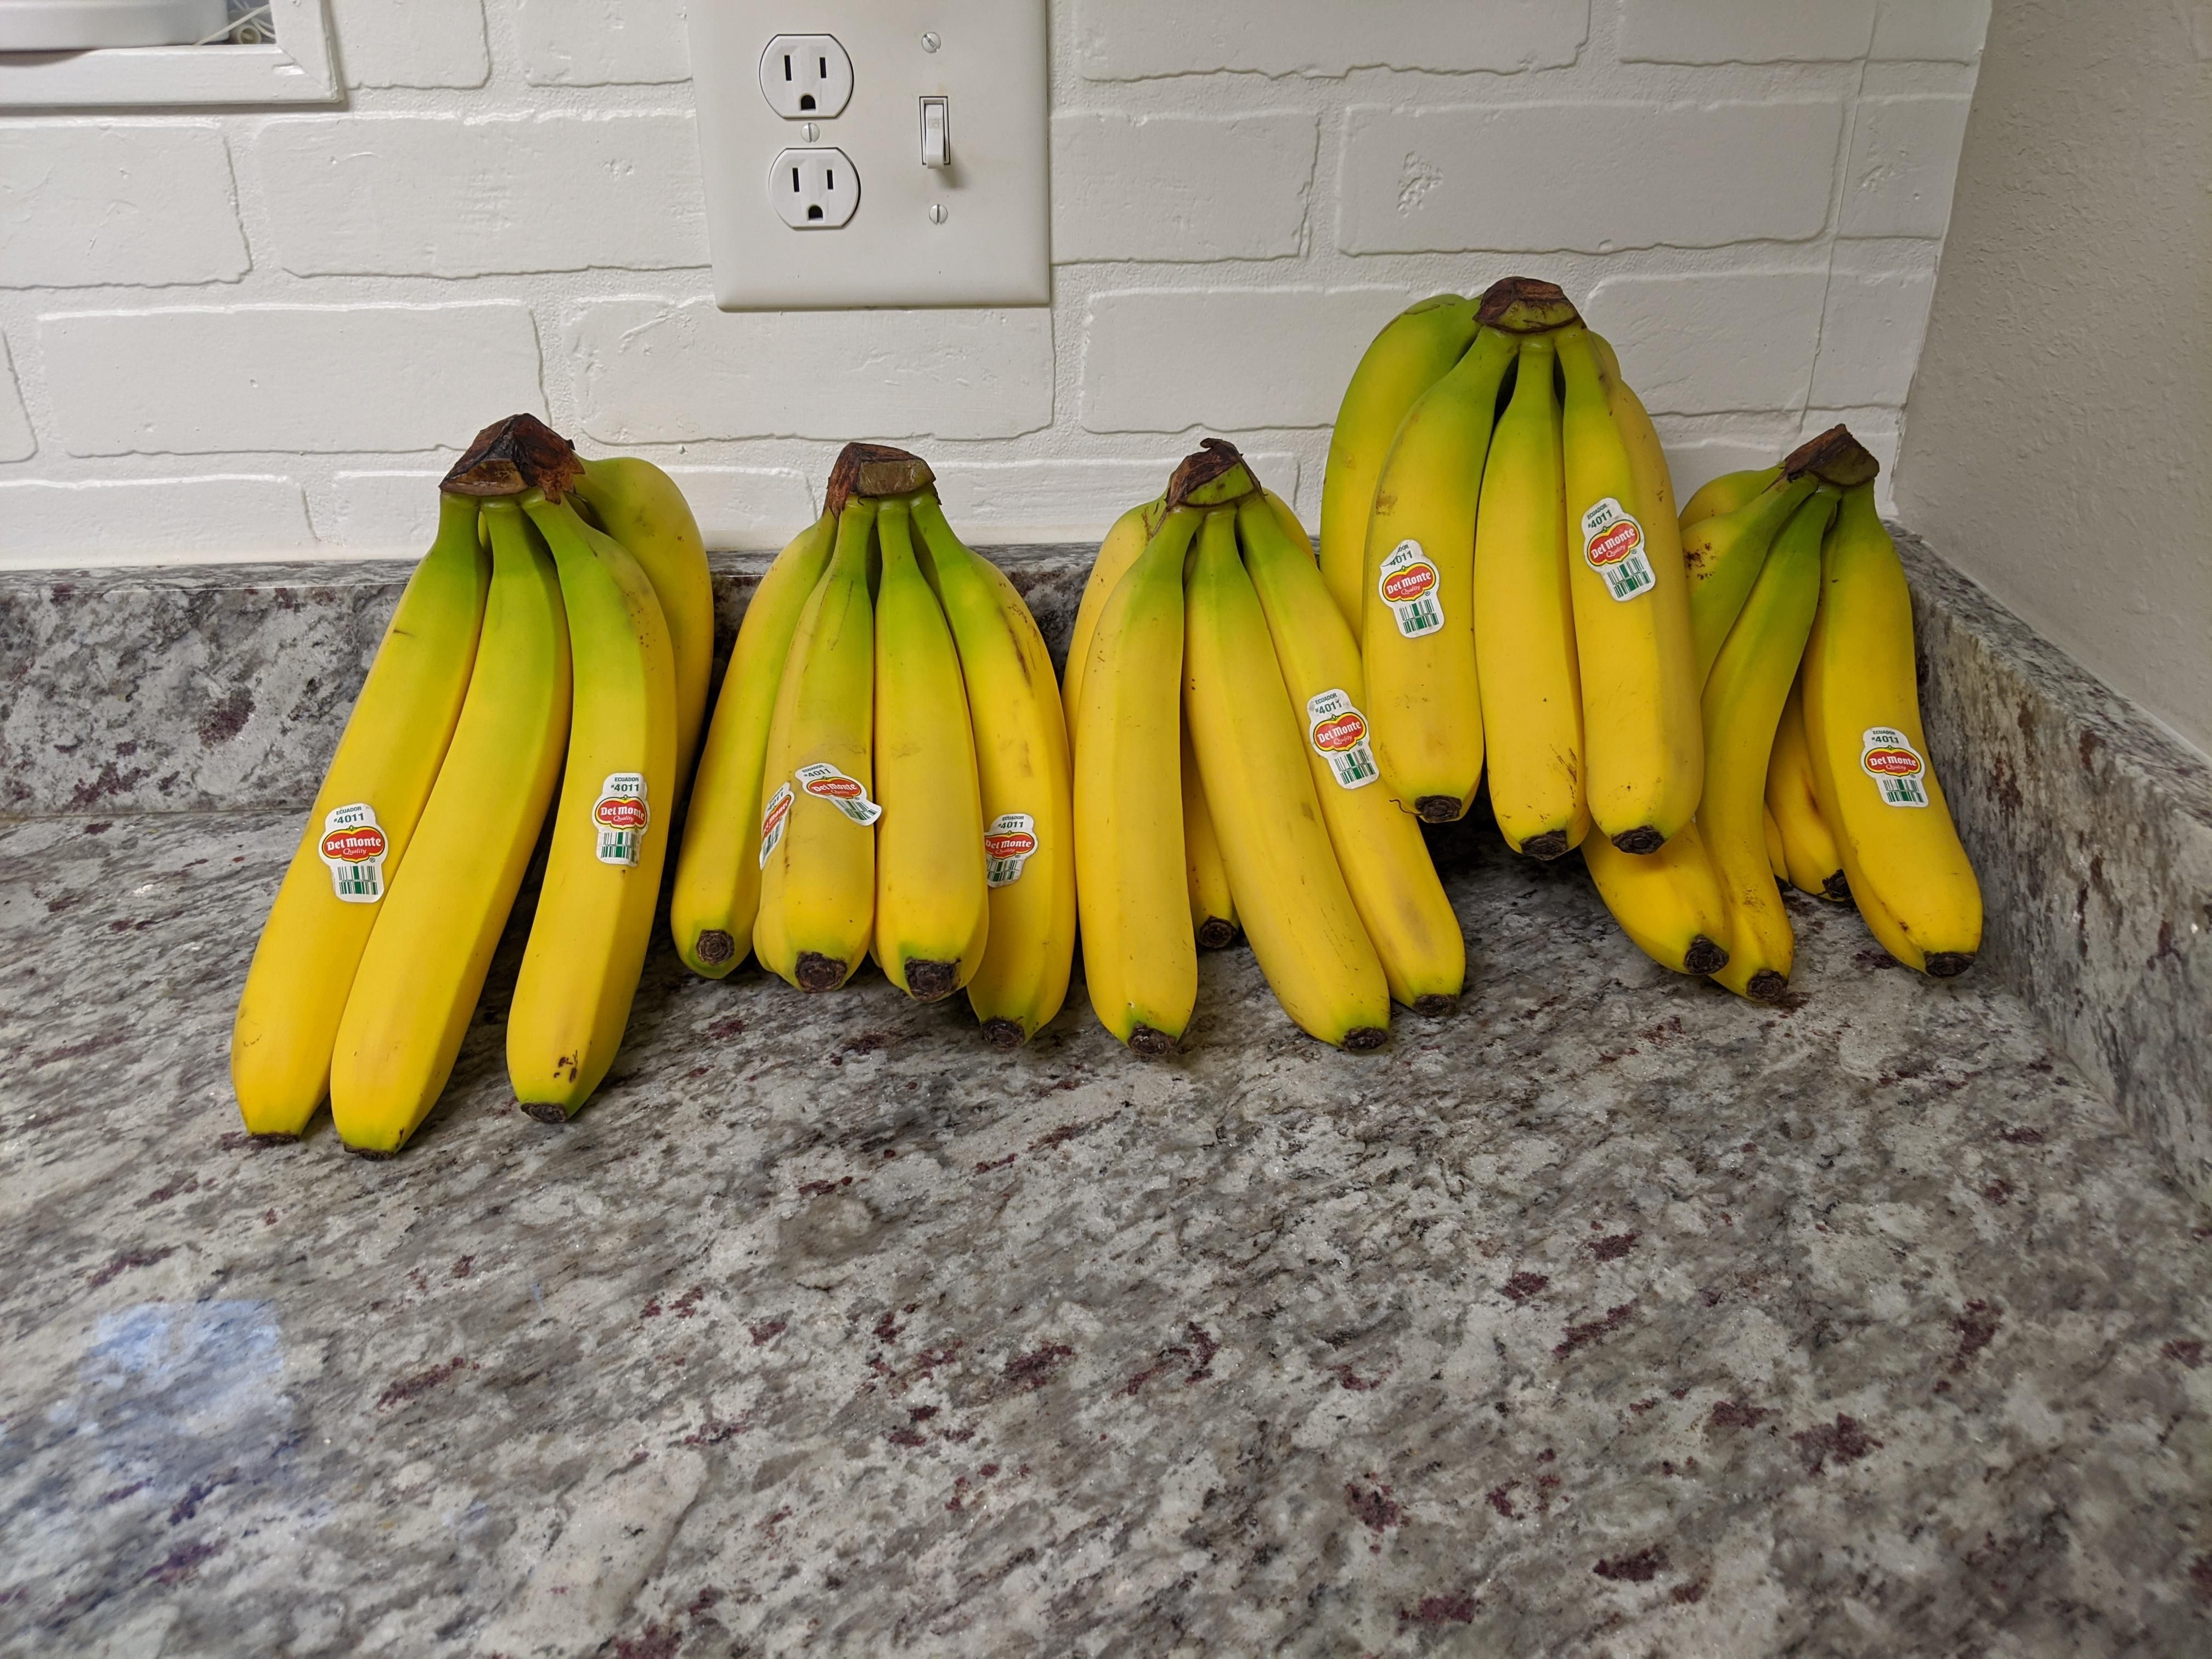 My fiance tried to have our groceries delivered today. She said she wanted five bananas and somehow the woman misunderstood and bought THIRTEEN POUNDS OF BANANAS